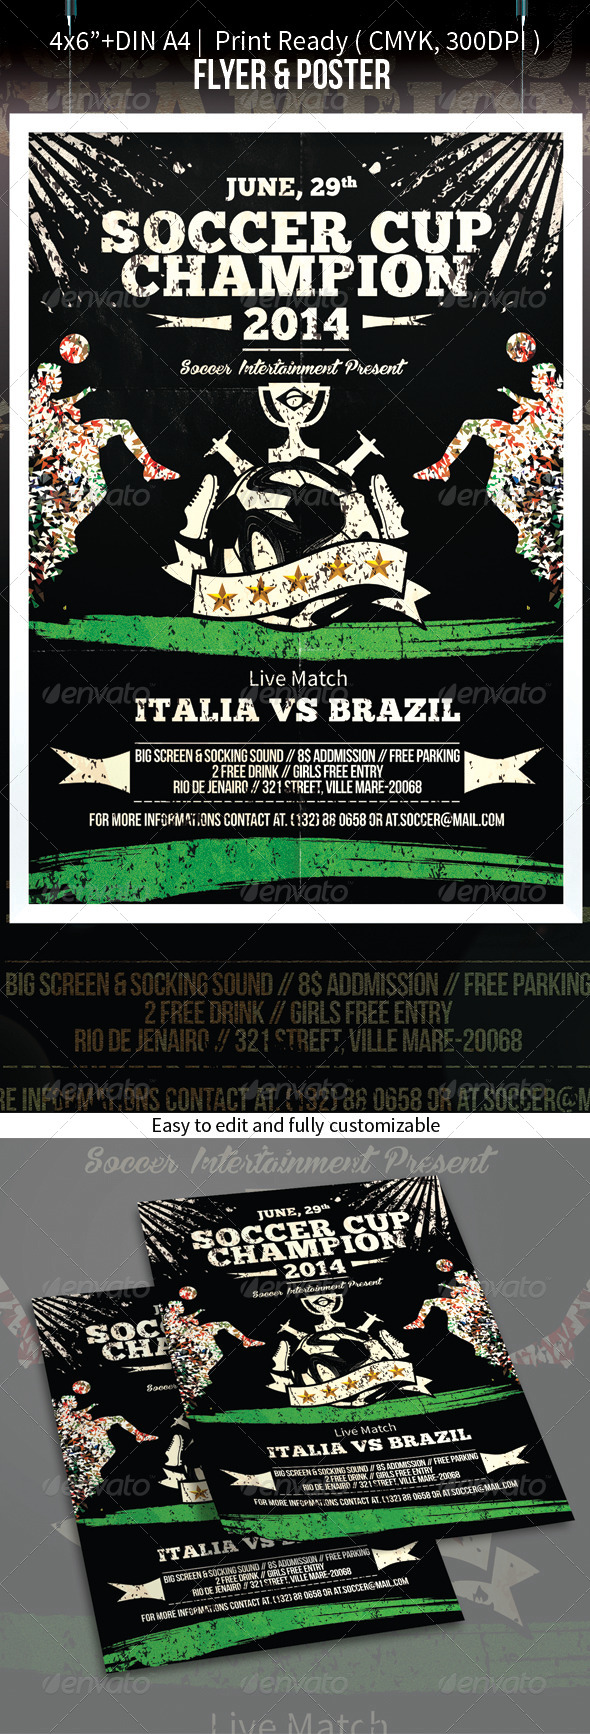 Soccer Cup Brazil 2014 Football Flyer